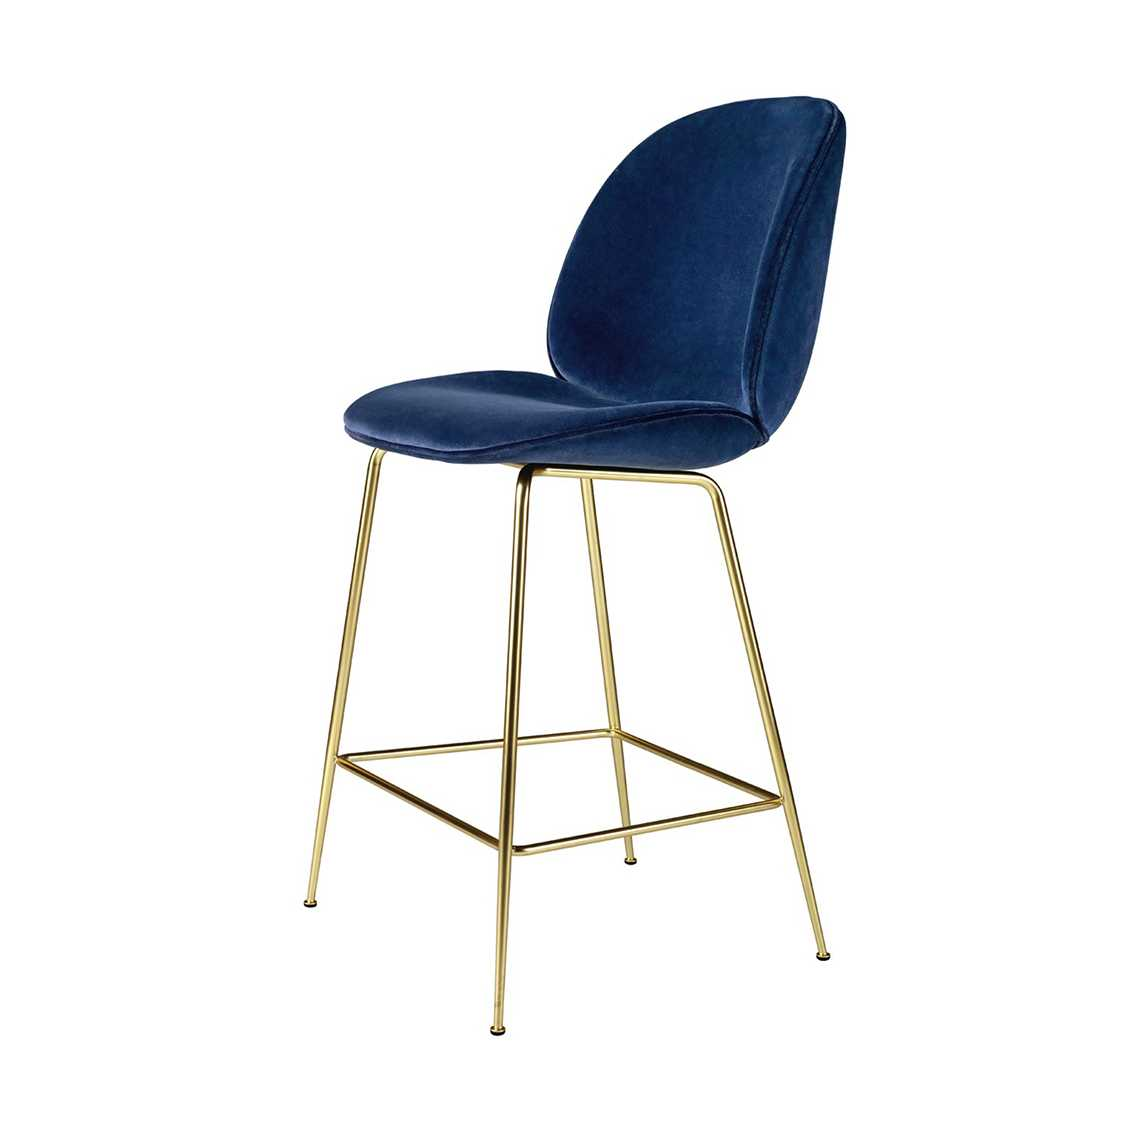 Tabouret Bar Bleu Canard Looking For A Gubi Beetle Barstool Shop Online At The